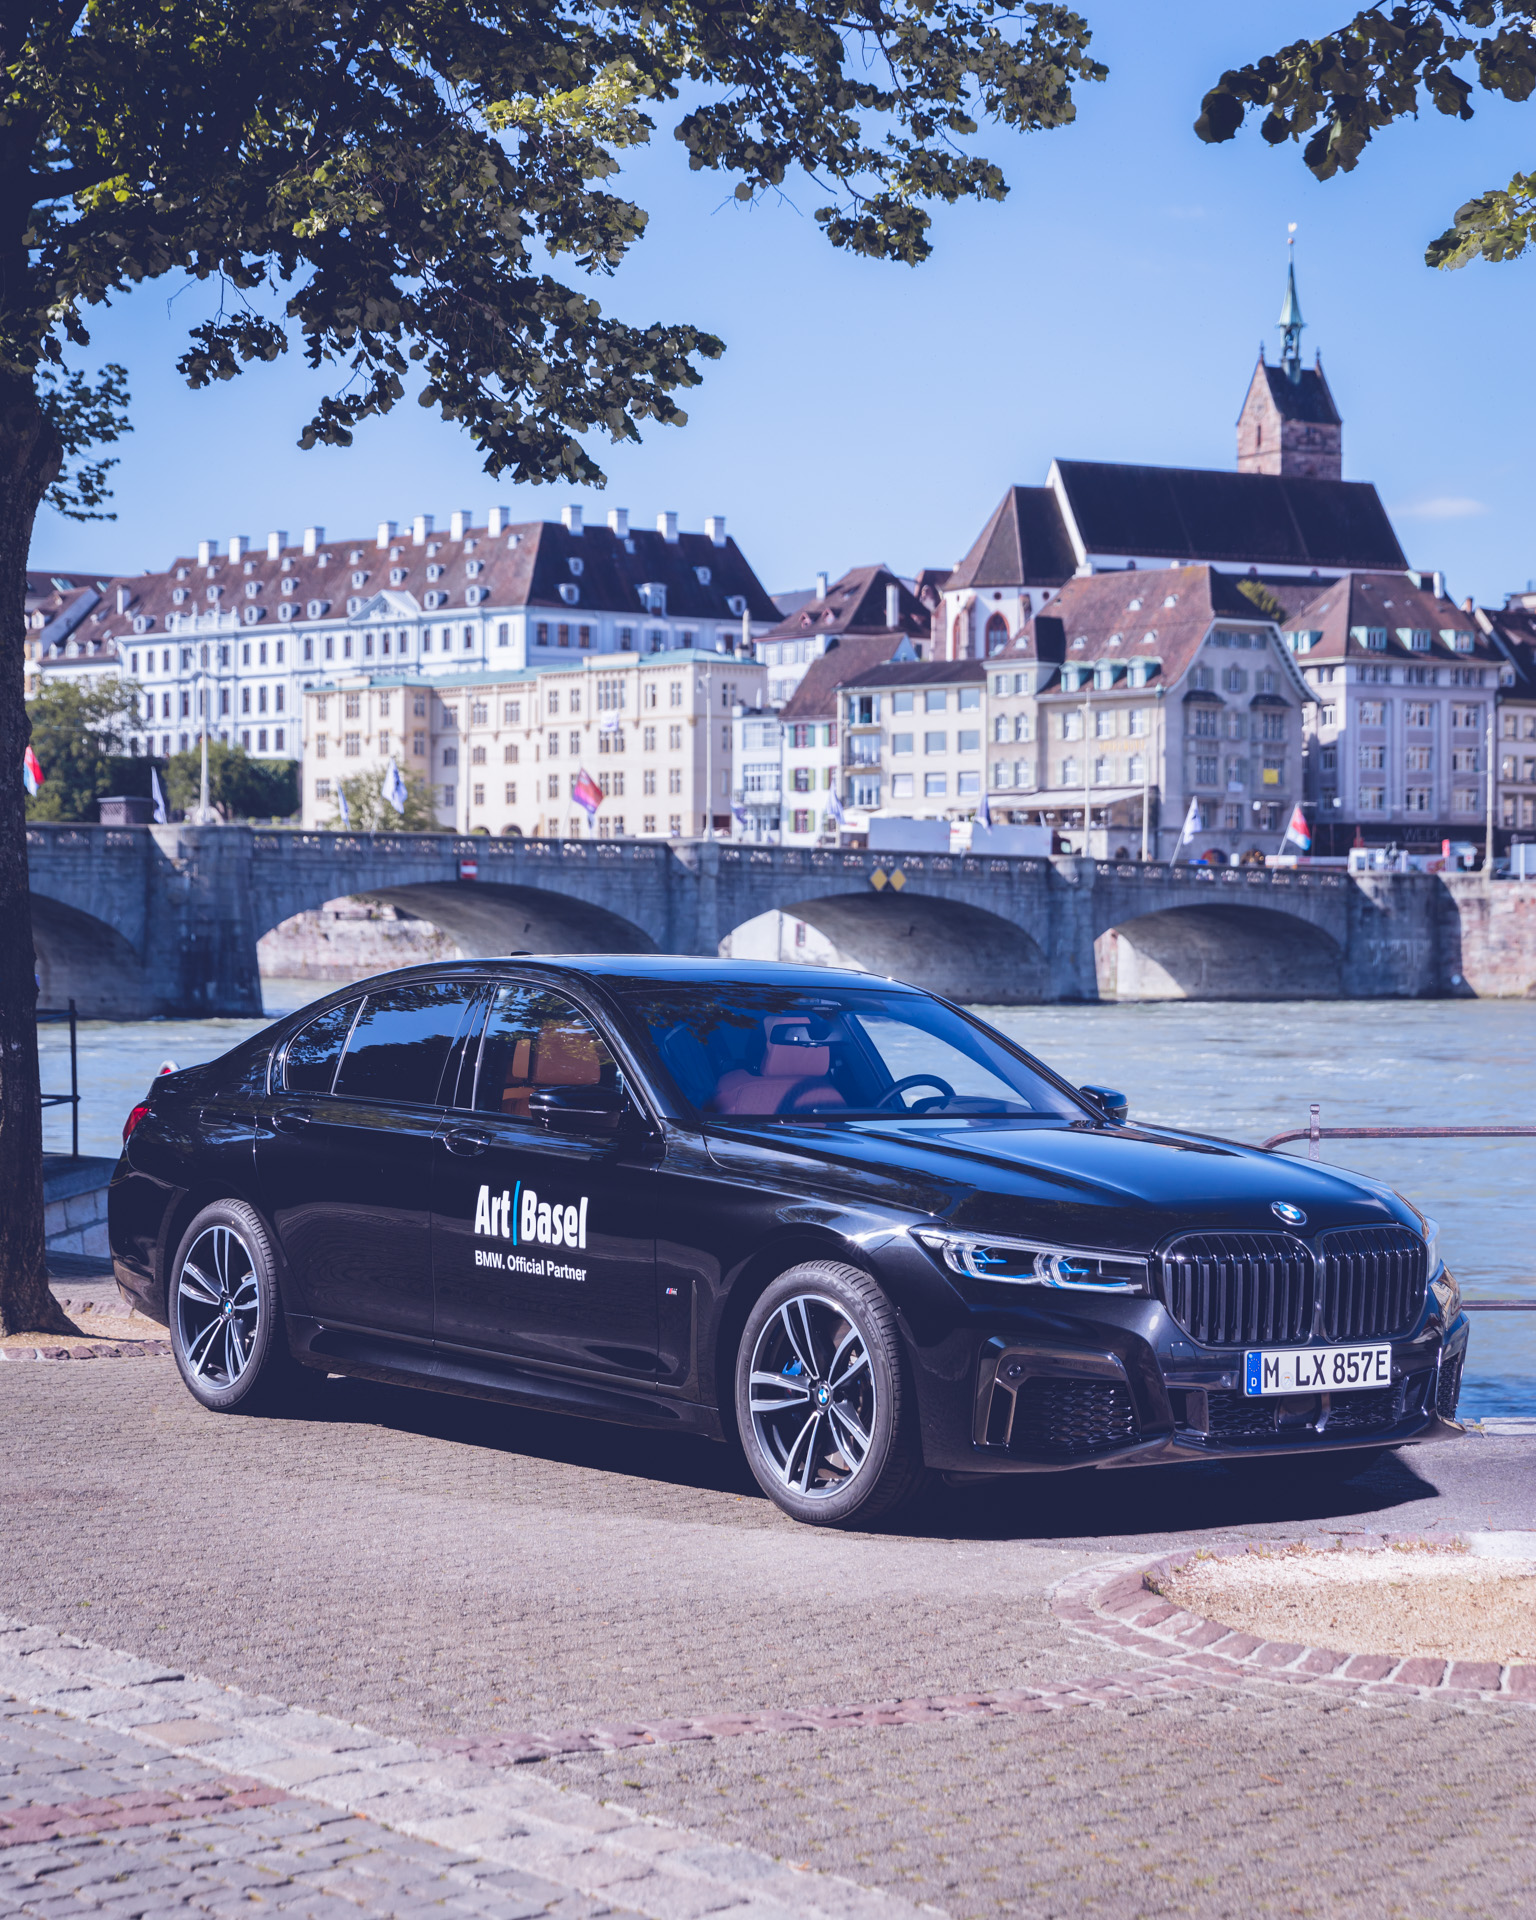 Art Basel BMW Culture 7er 7series 2019 in Basel auf Kopsteinpflaster am Rhein